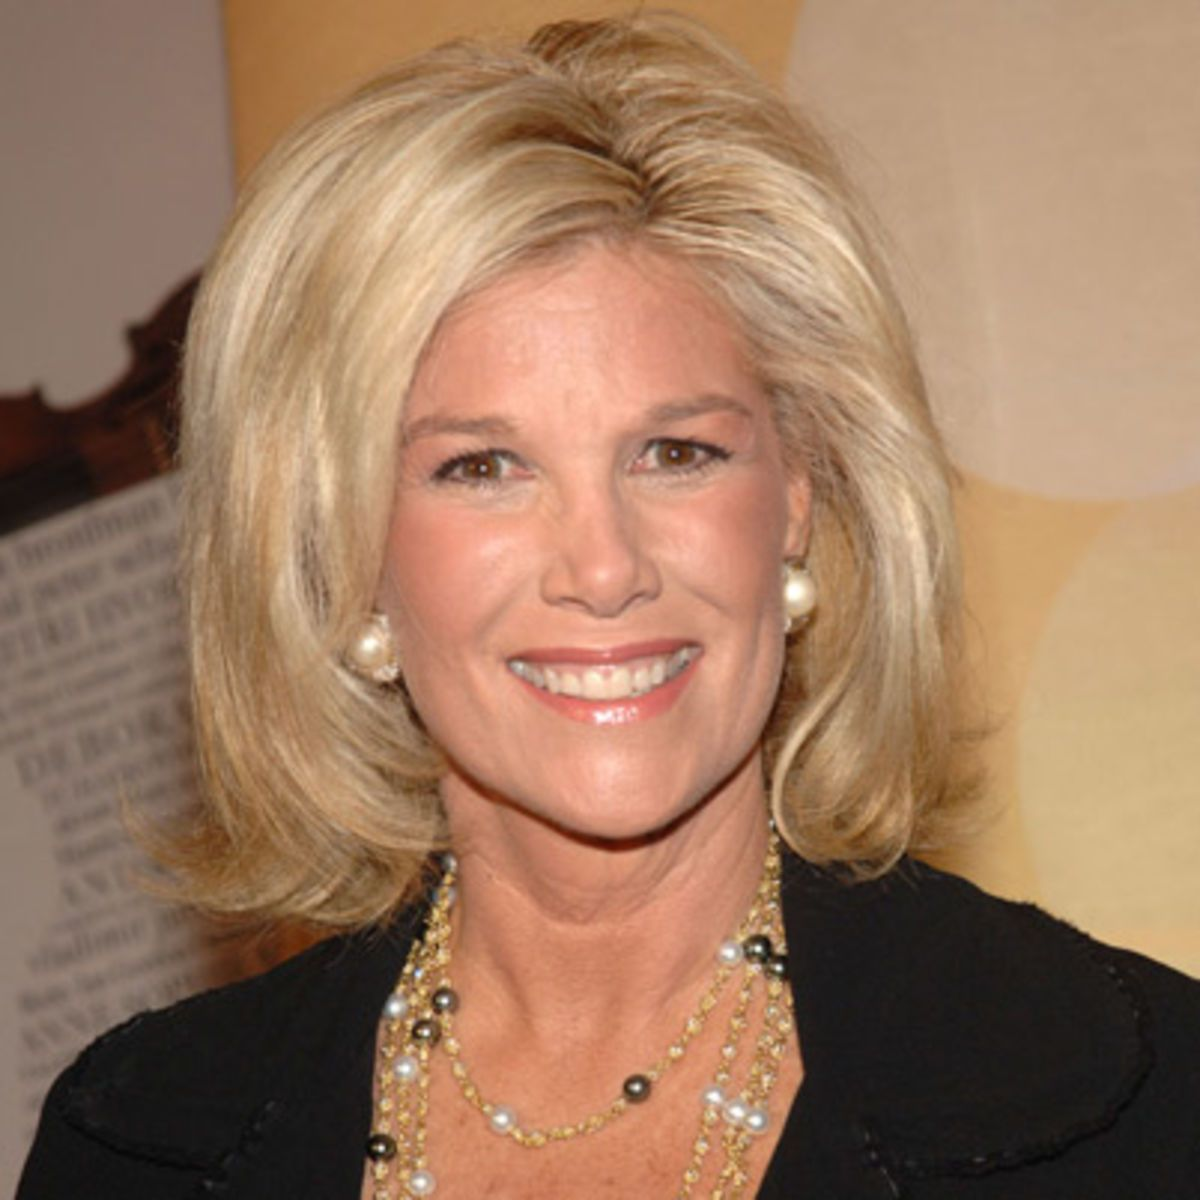 Learn More About Joan Lunden, Journalist, Television